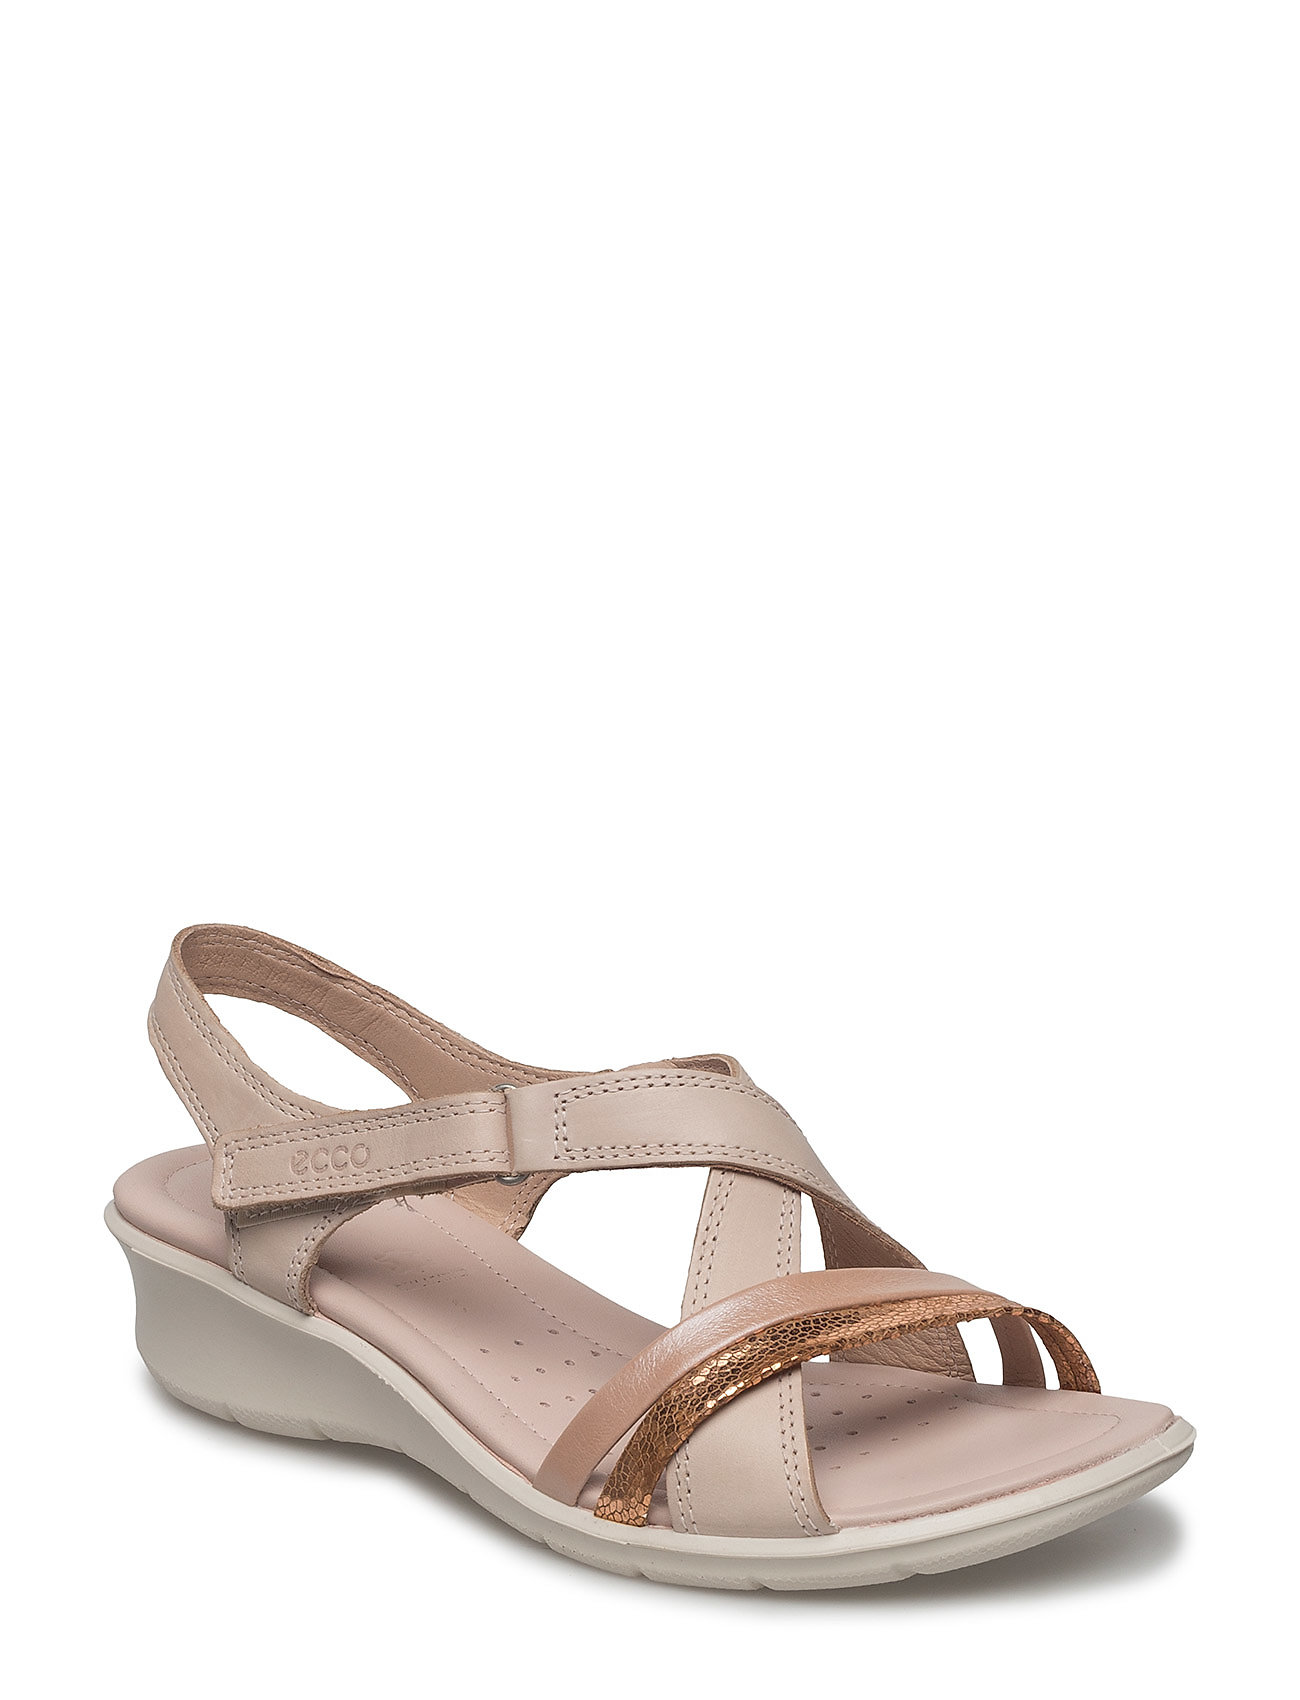 ECCO FELICIA SANDAL - MUTED CLAY/POWDER/ROSE DUST